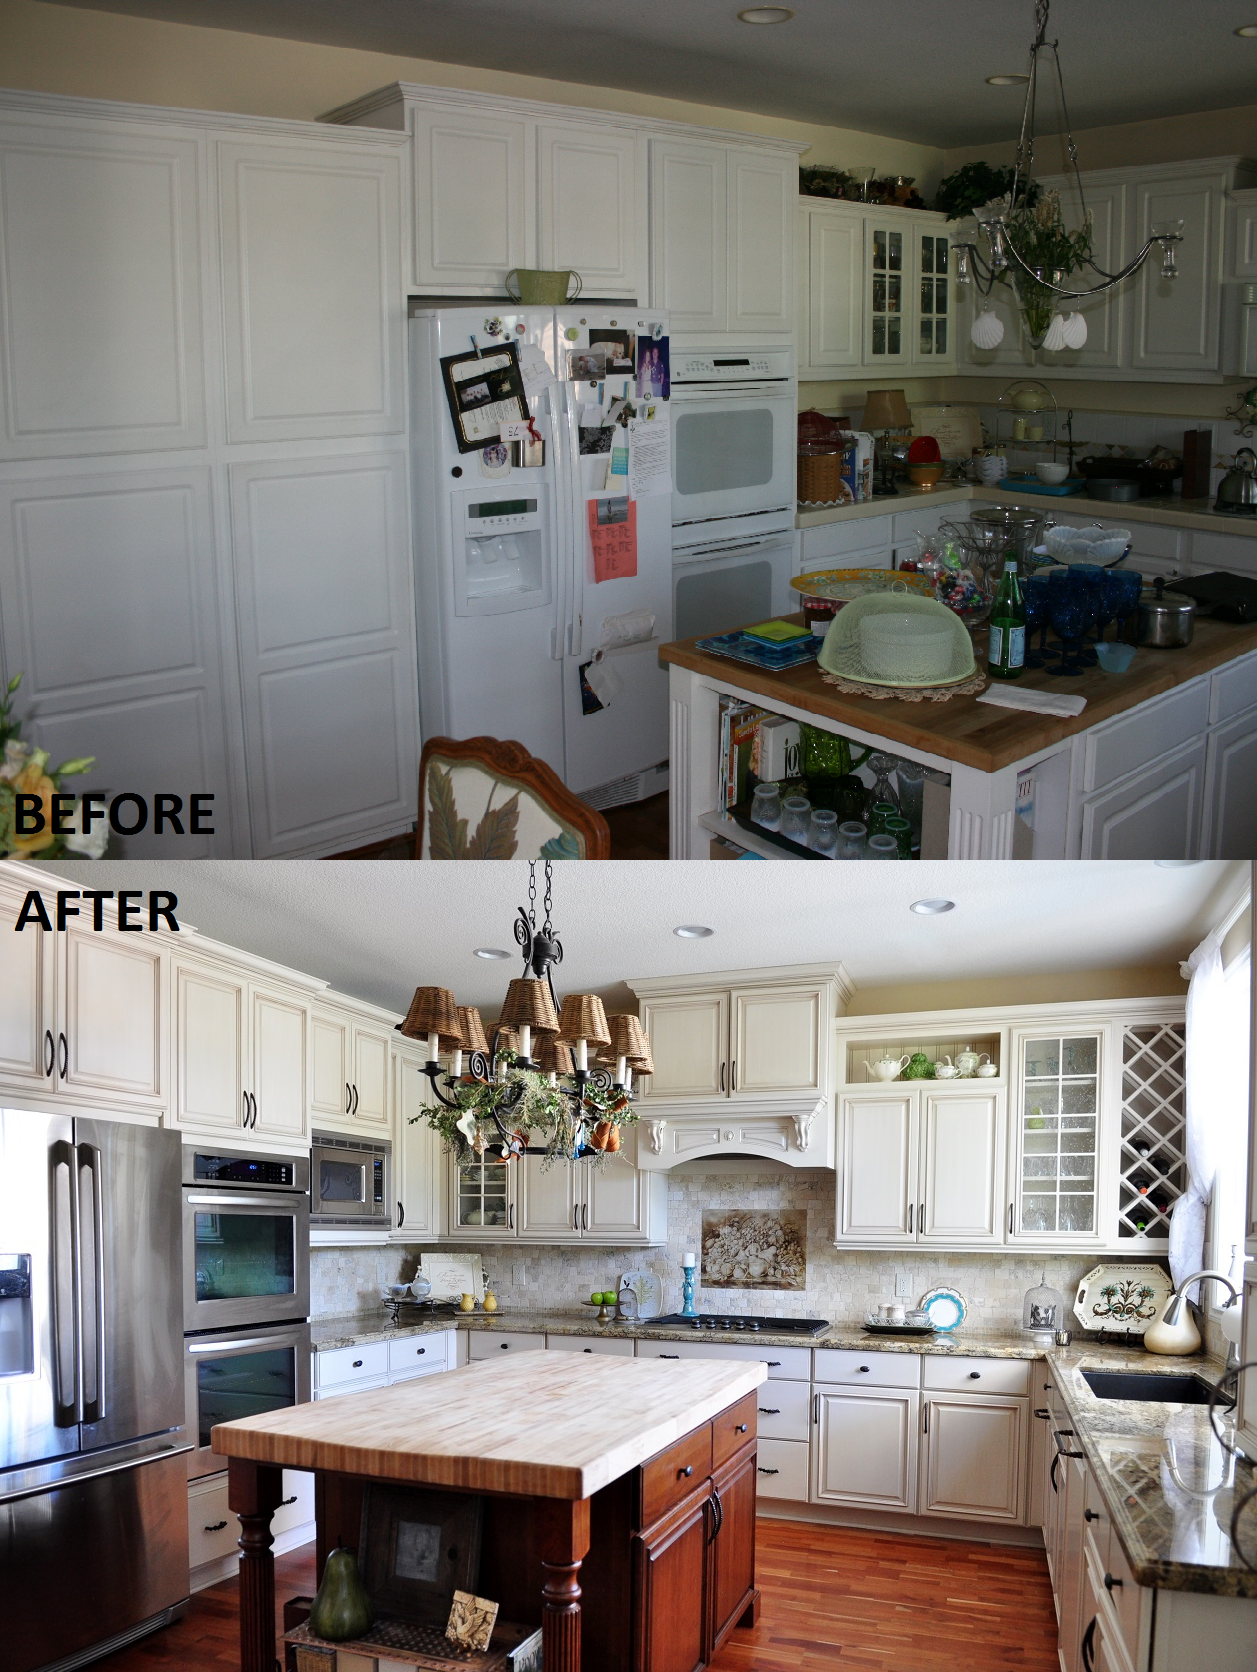 Kitchen Remodel done by Kitchens Etc of Ventura County Cabinetry